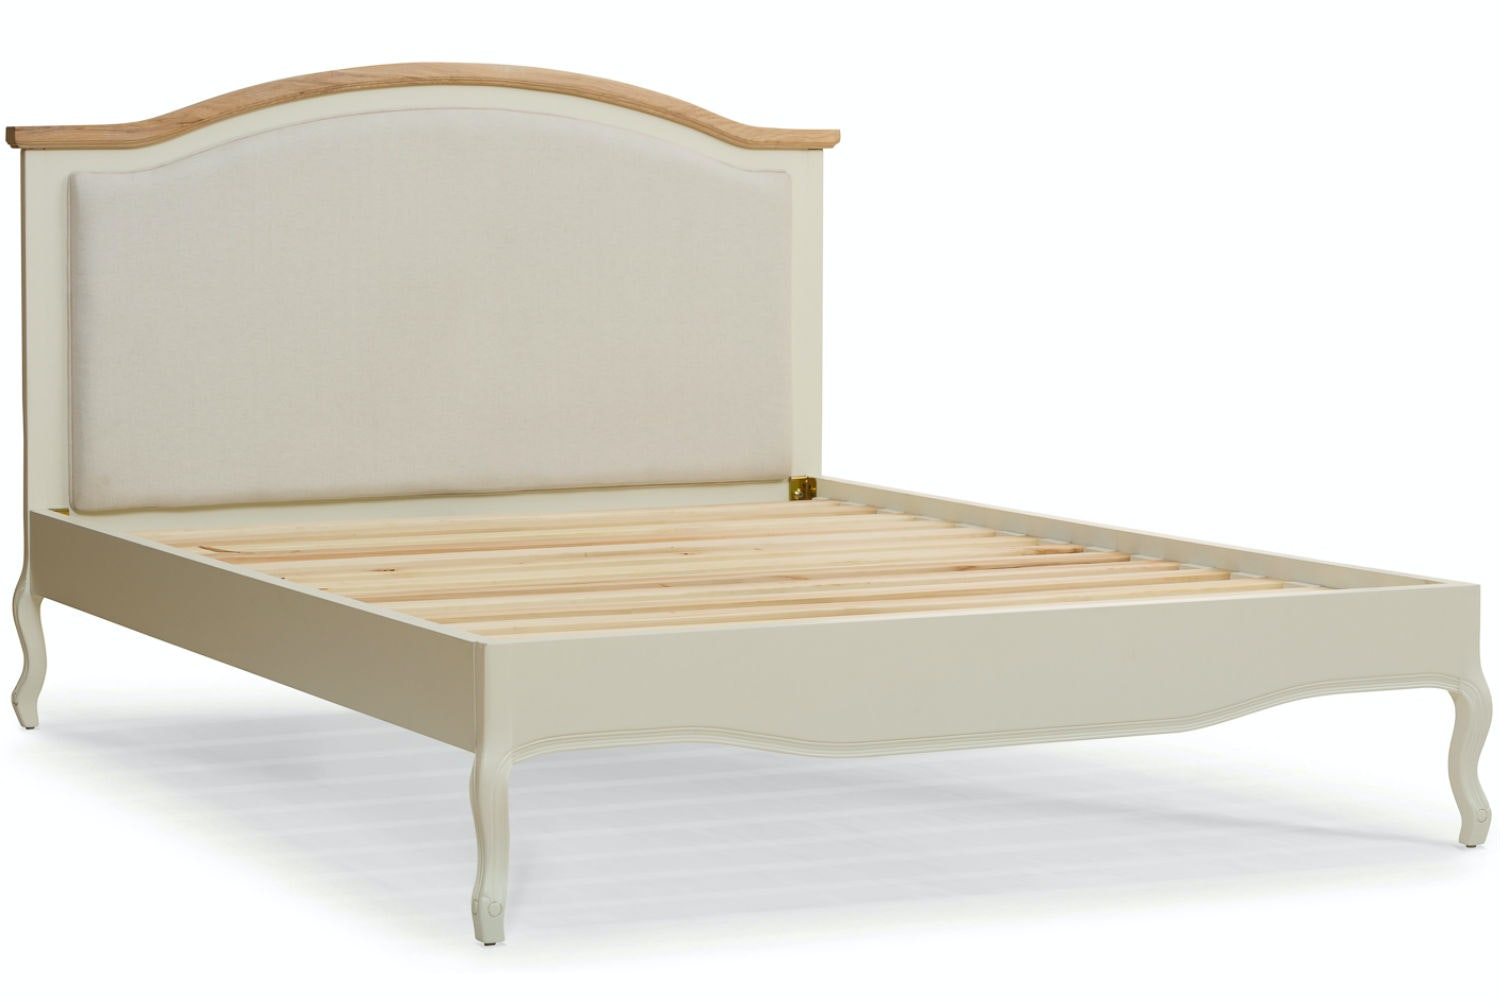 Bouvard Bed Frame 4ft6 | Cream